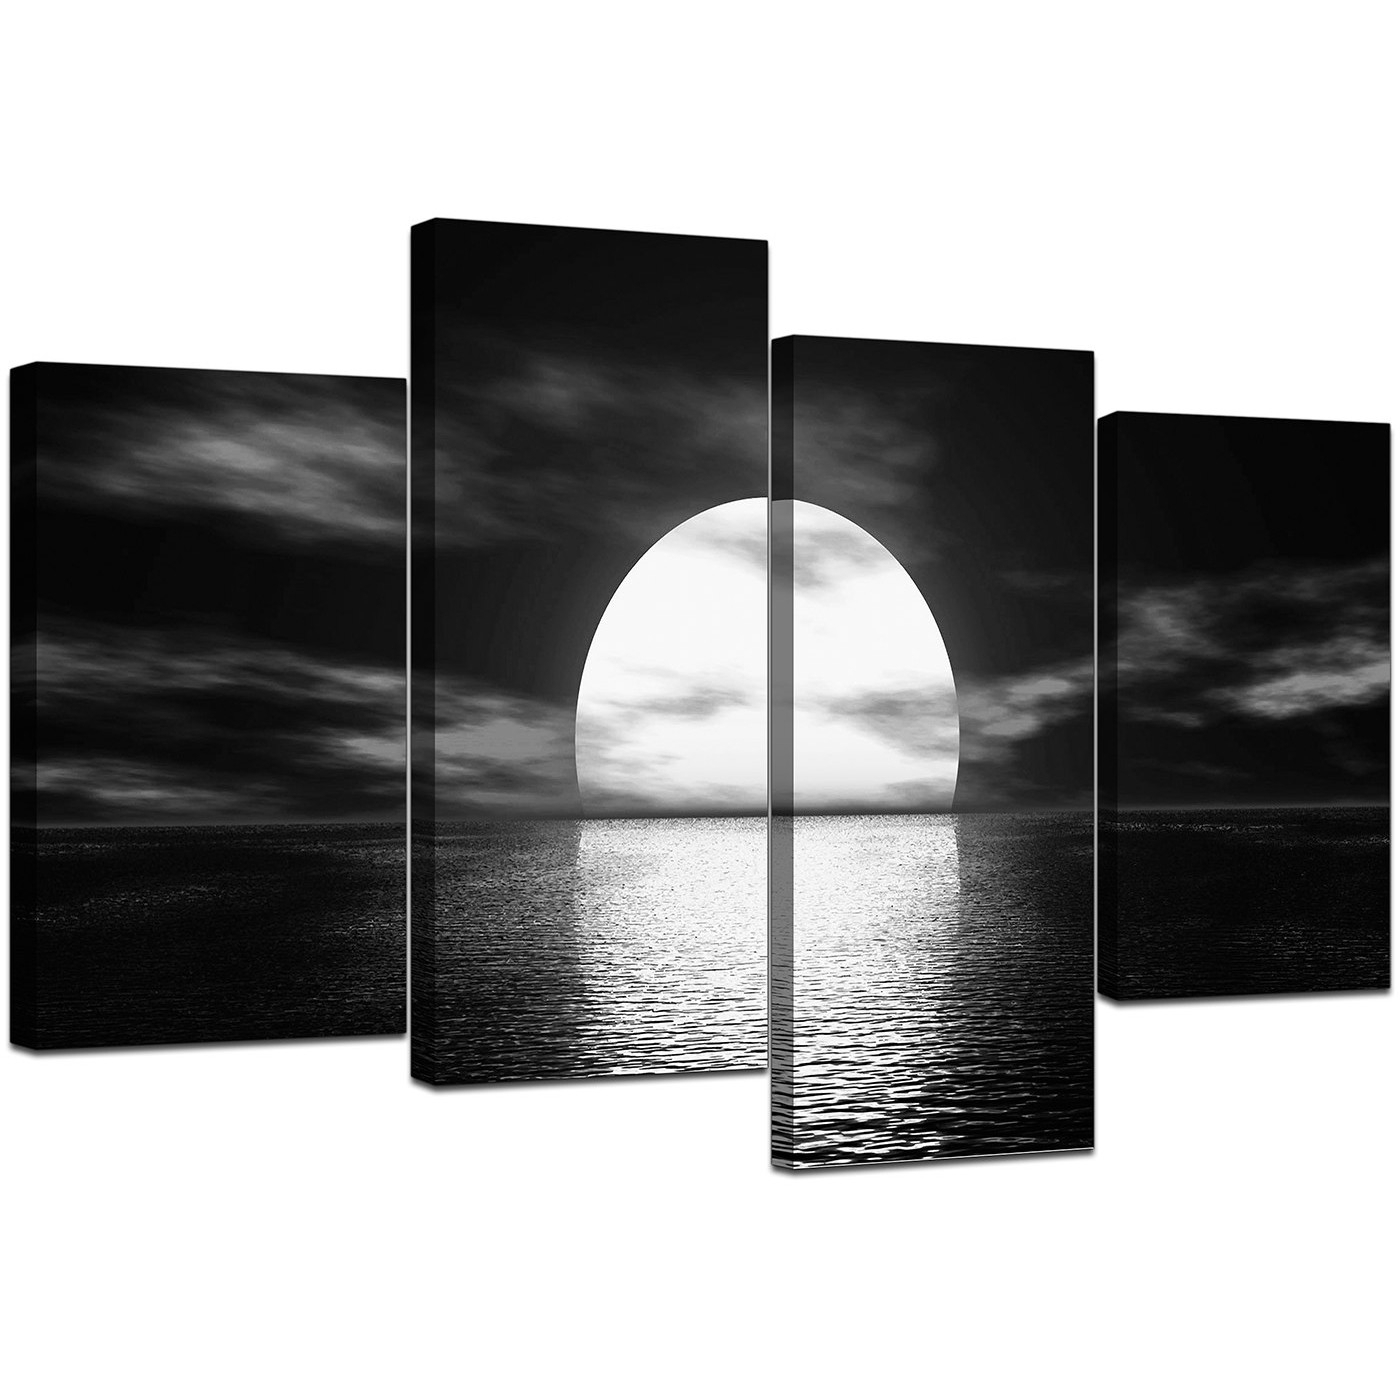 Black And White Canvas – Ocean Sunset Canvas Wall Art With Regard To Newest Black And White Large Canvas Wall Art (View 5 of 20)